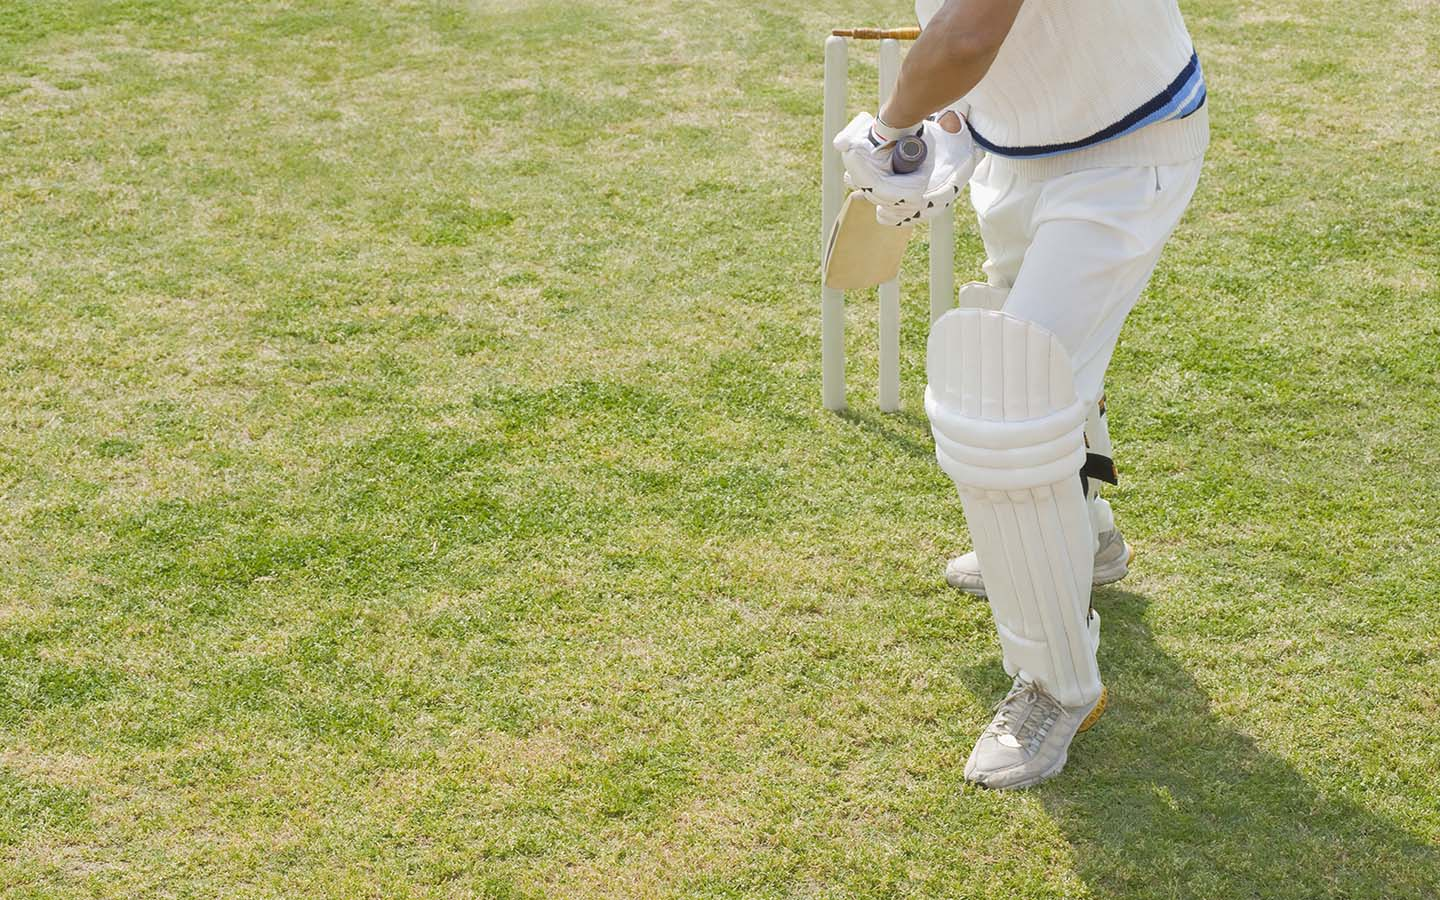 Player in a batting position